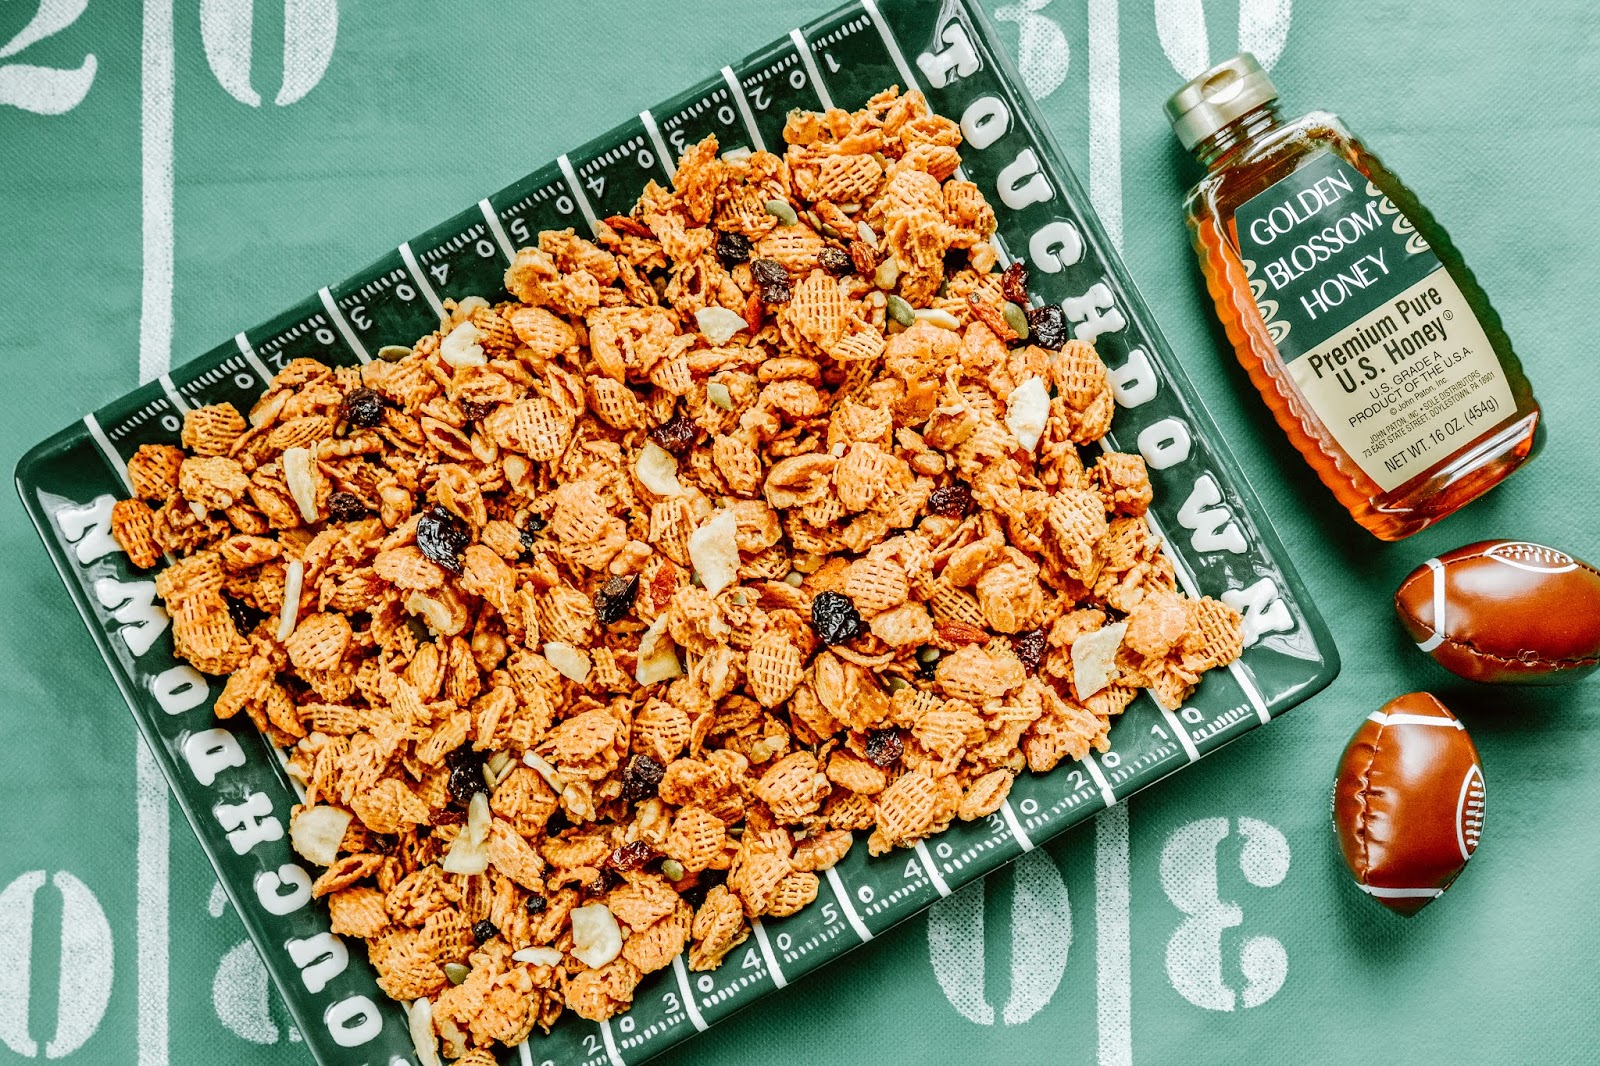 Peanut Butter Cereal Snack Mix